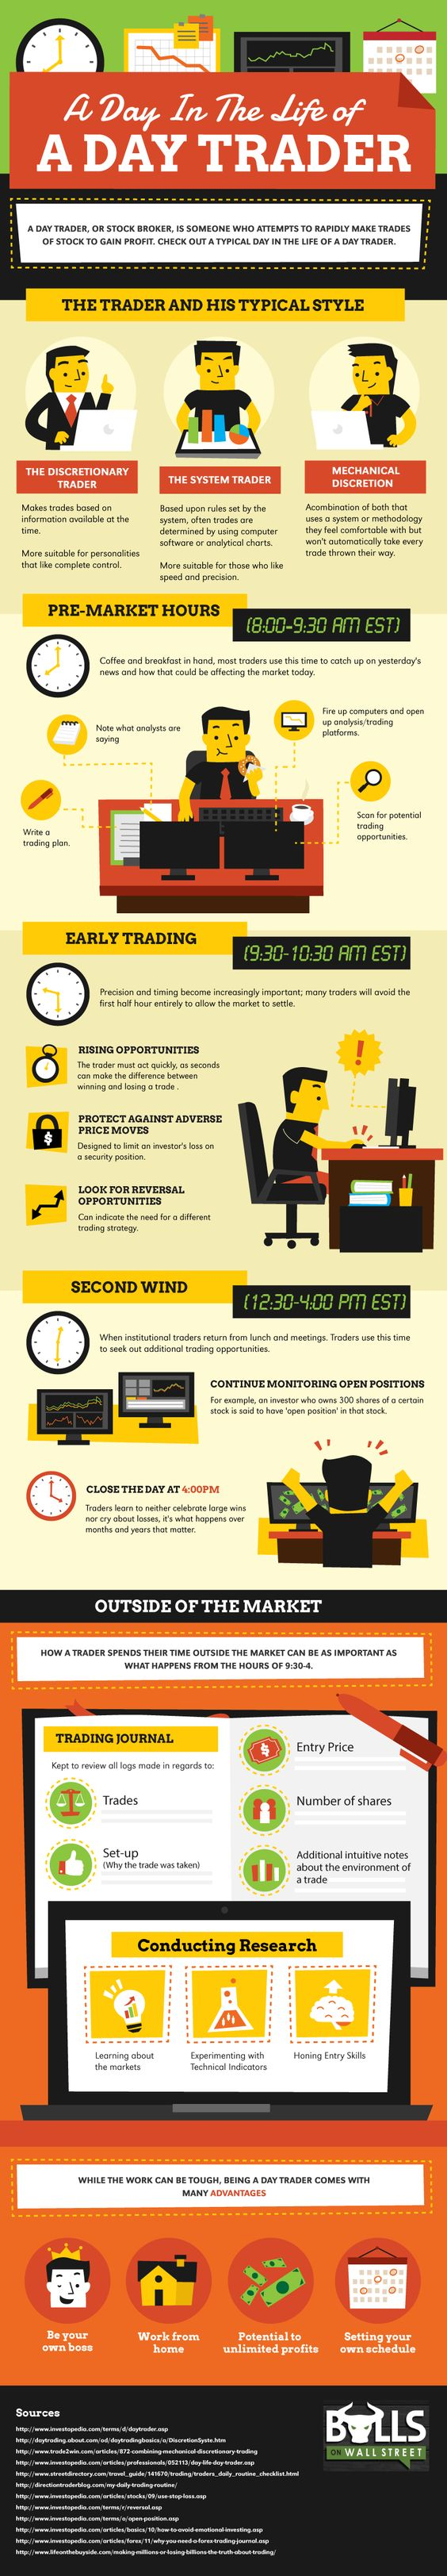 A Day In The Life of a Day Trader #Trader #StockBroker #infographic | pinned by Jason Price, Seattle  Excellent!  For more information, check out http://www.tradingprofits4u.com/